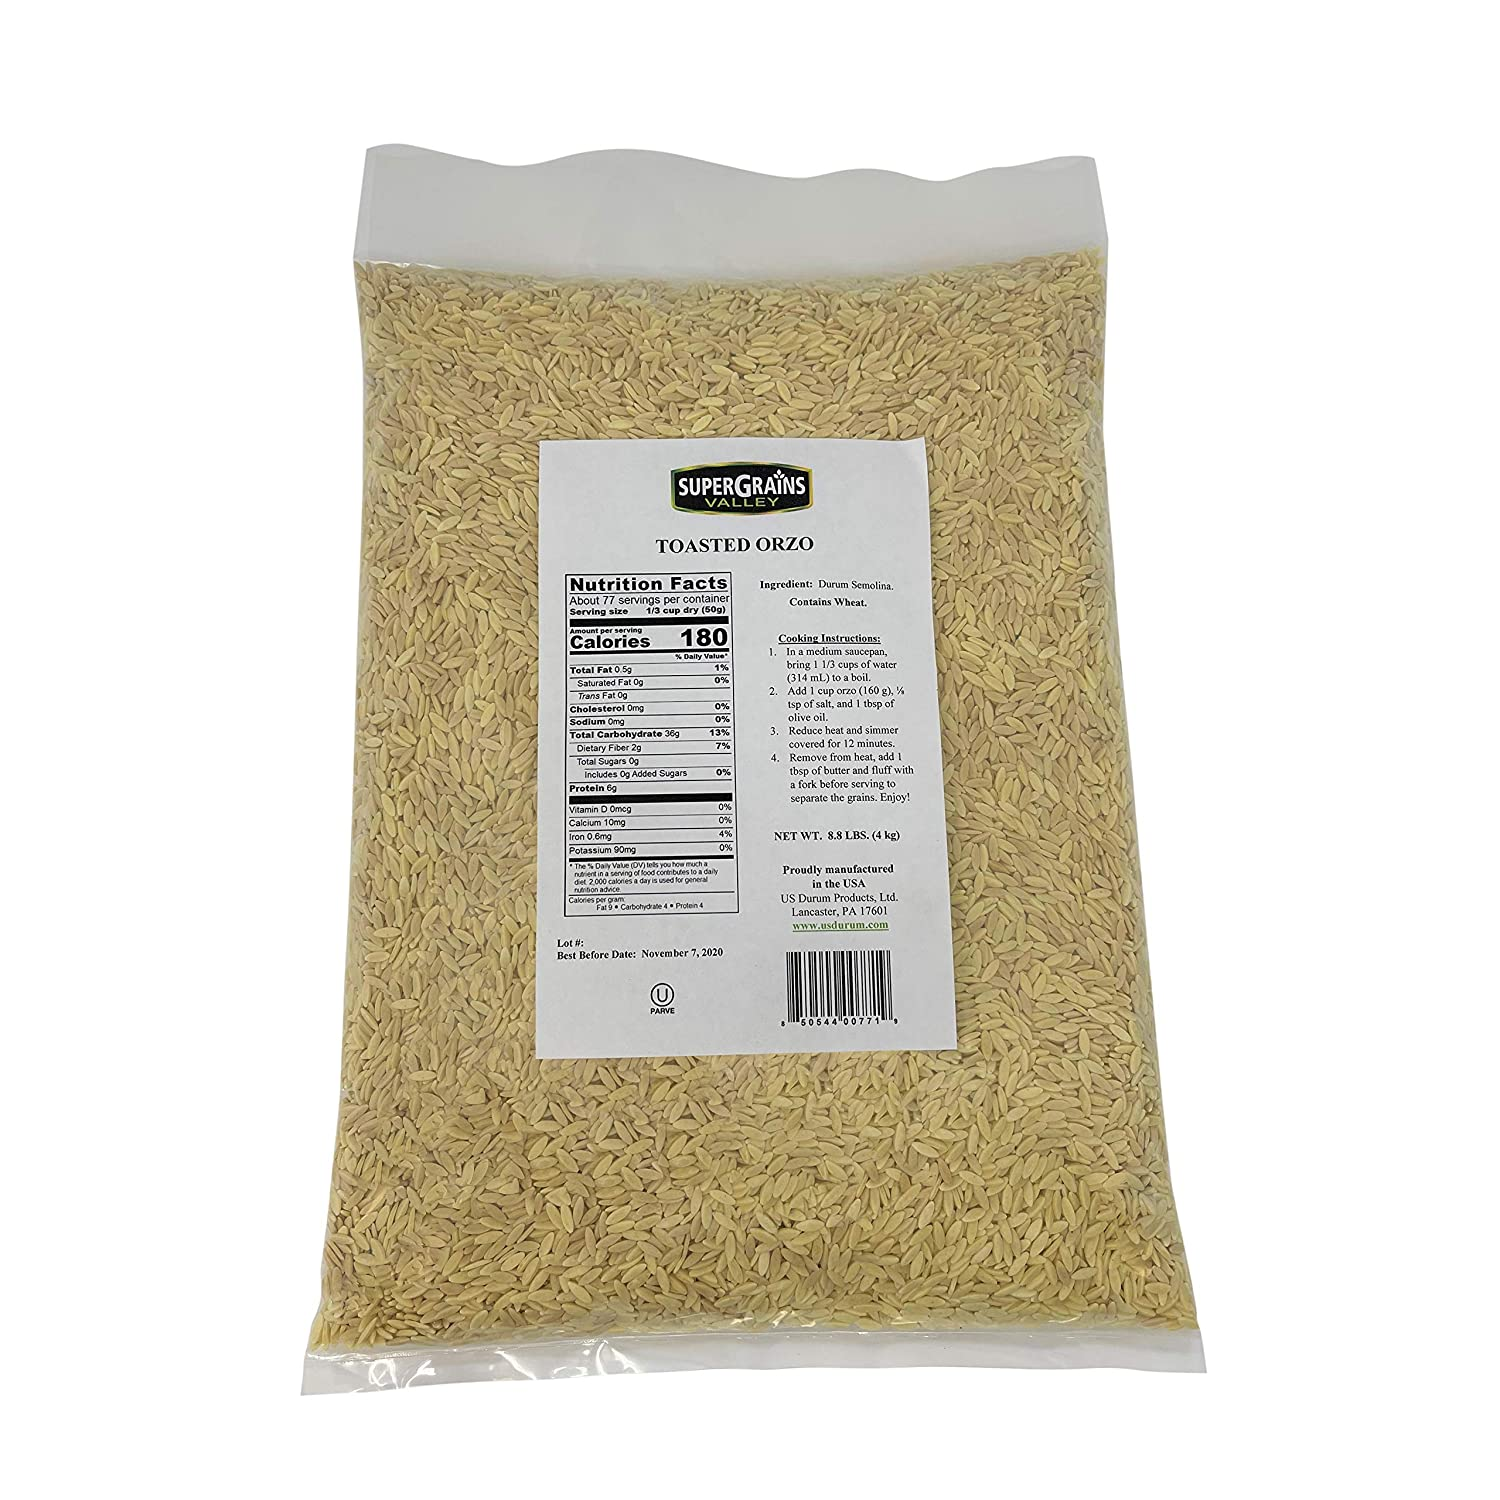 SuperGrains Valley Toasted Orzo Max 48% OFF Pasta Weekly update 8.8lbs Quality Kosher